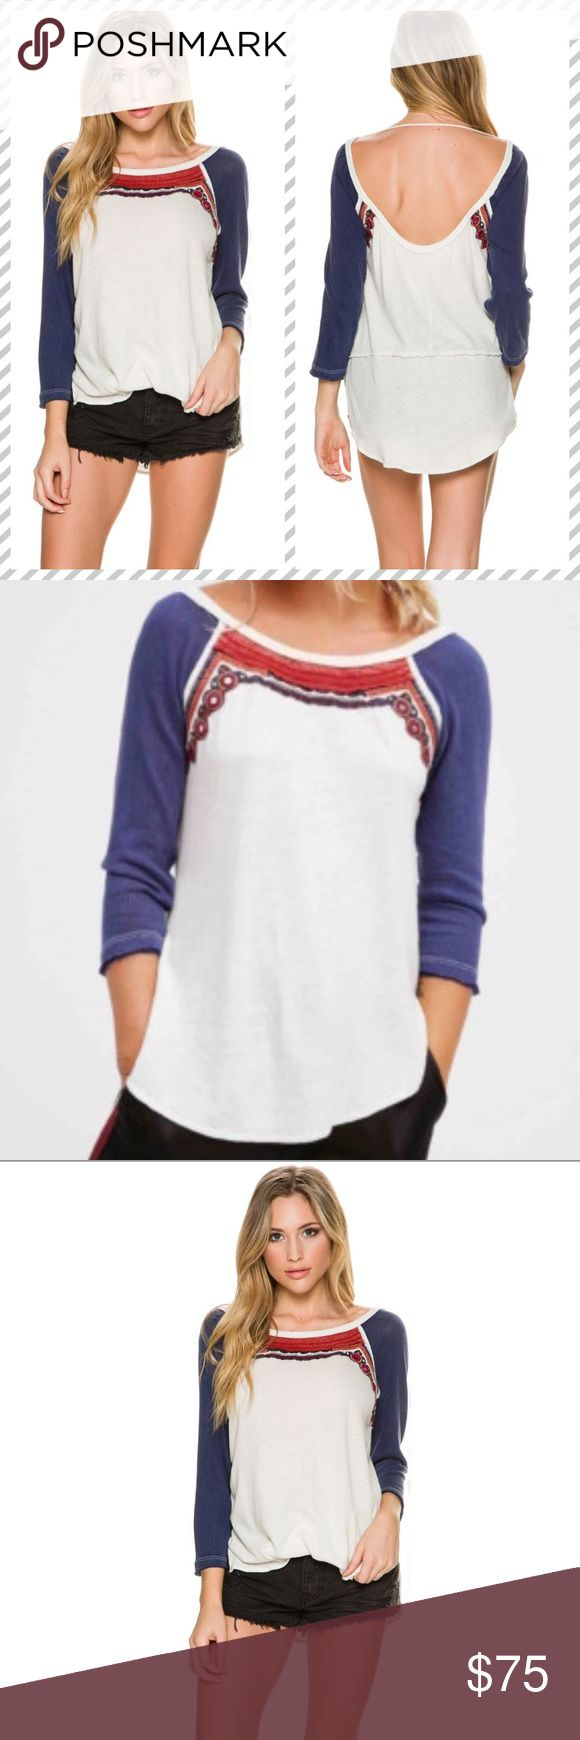 """Free People Embellished Tee Free People Embellished tee. Women's 3/4 sleeve tee. Boat neck. Pullover. Long set-in sleeves. Made from cotton. gorgeous ivory/cream shirt with a navy blue sleeve in boho ethnic style with embroidery and mirror detailing. exposed seams, unfinished edges, light fabric, wide neck with low back. Easy comfortable fit and very cool look!  Chest measures ~19"""" armpit to armpit. Great for spring!  Never worn merely tried on. Free People Tops Tees - Long Sleeve"""